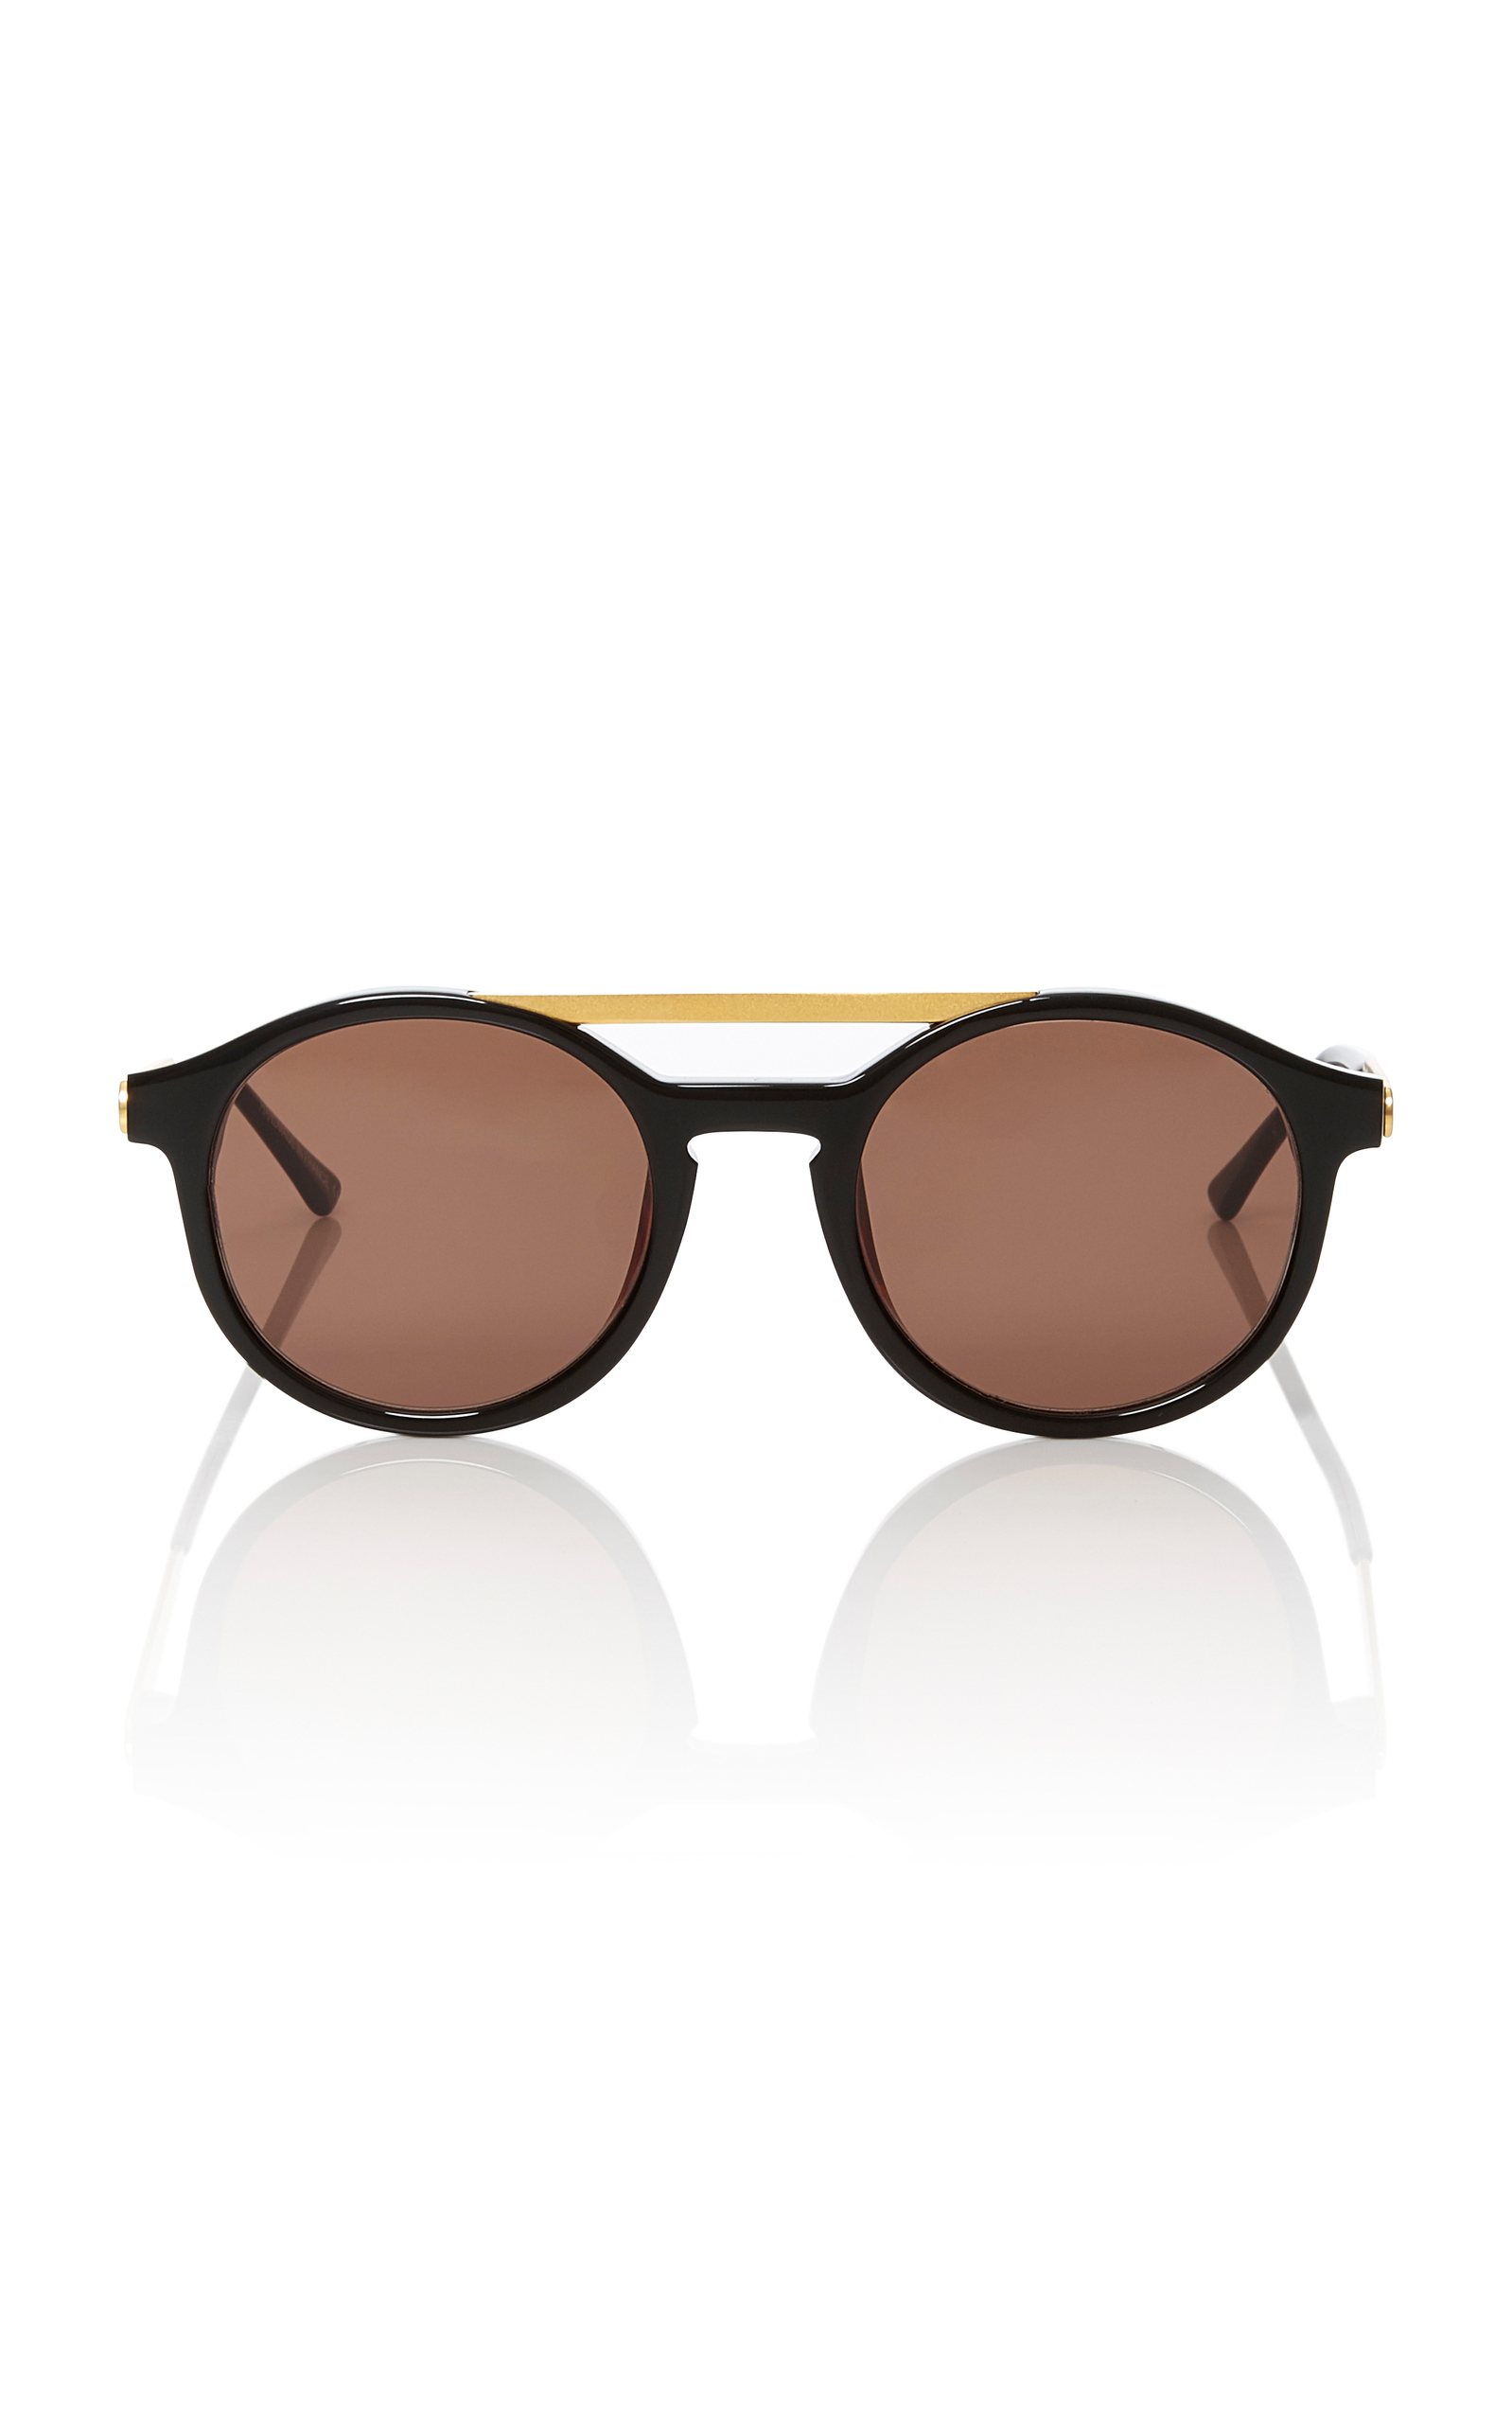 Thierry Lasry Fancy Round Brow-bar Sunglasses, Black